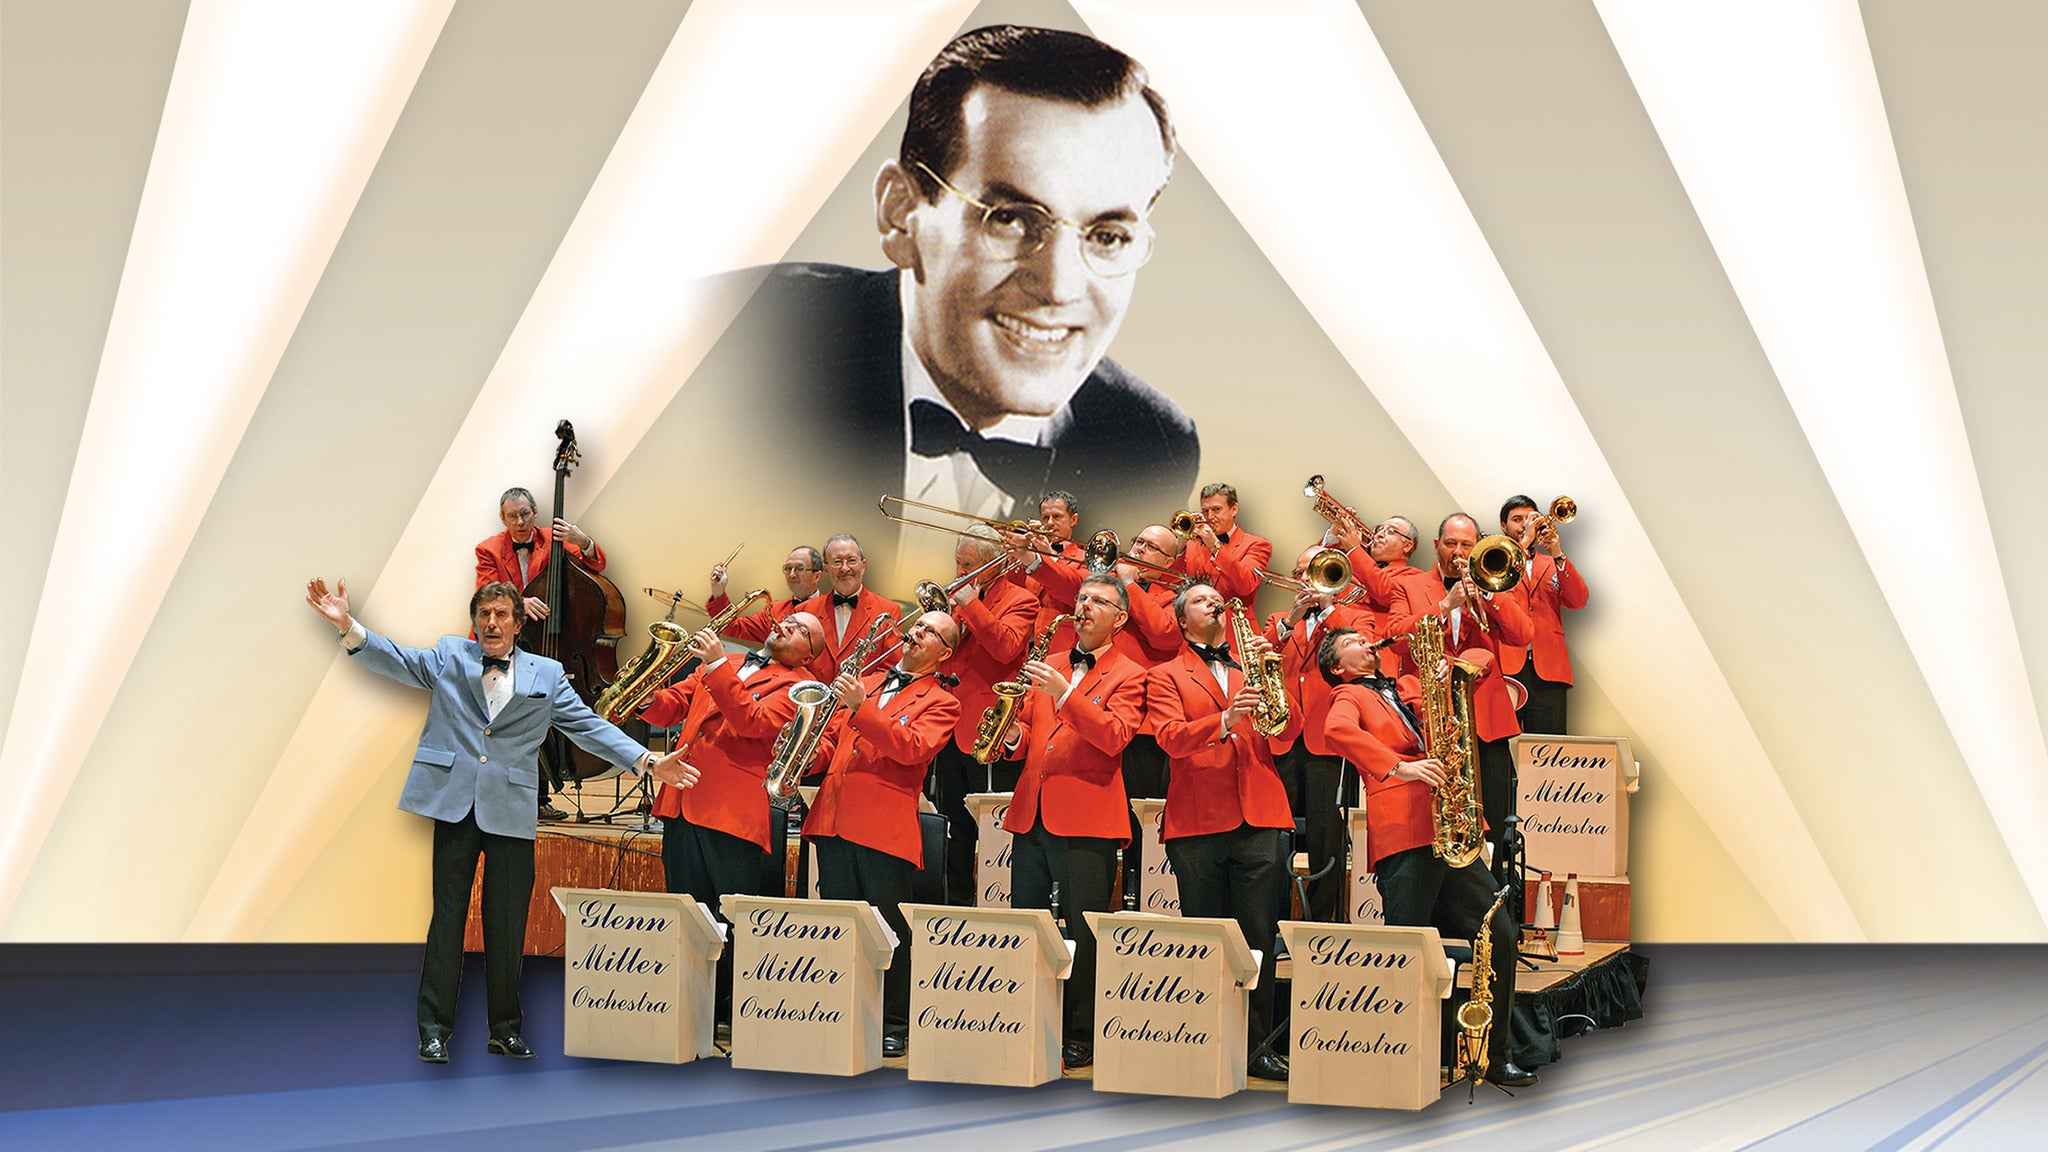 Glenn Miller Orchestra Seating Plans